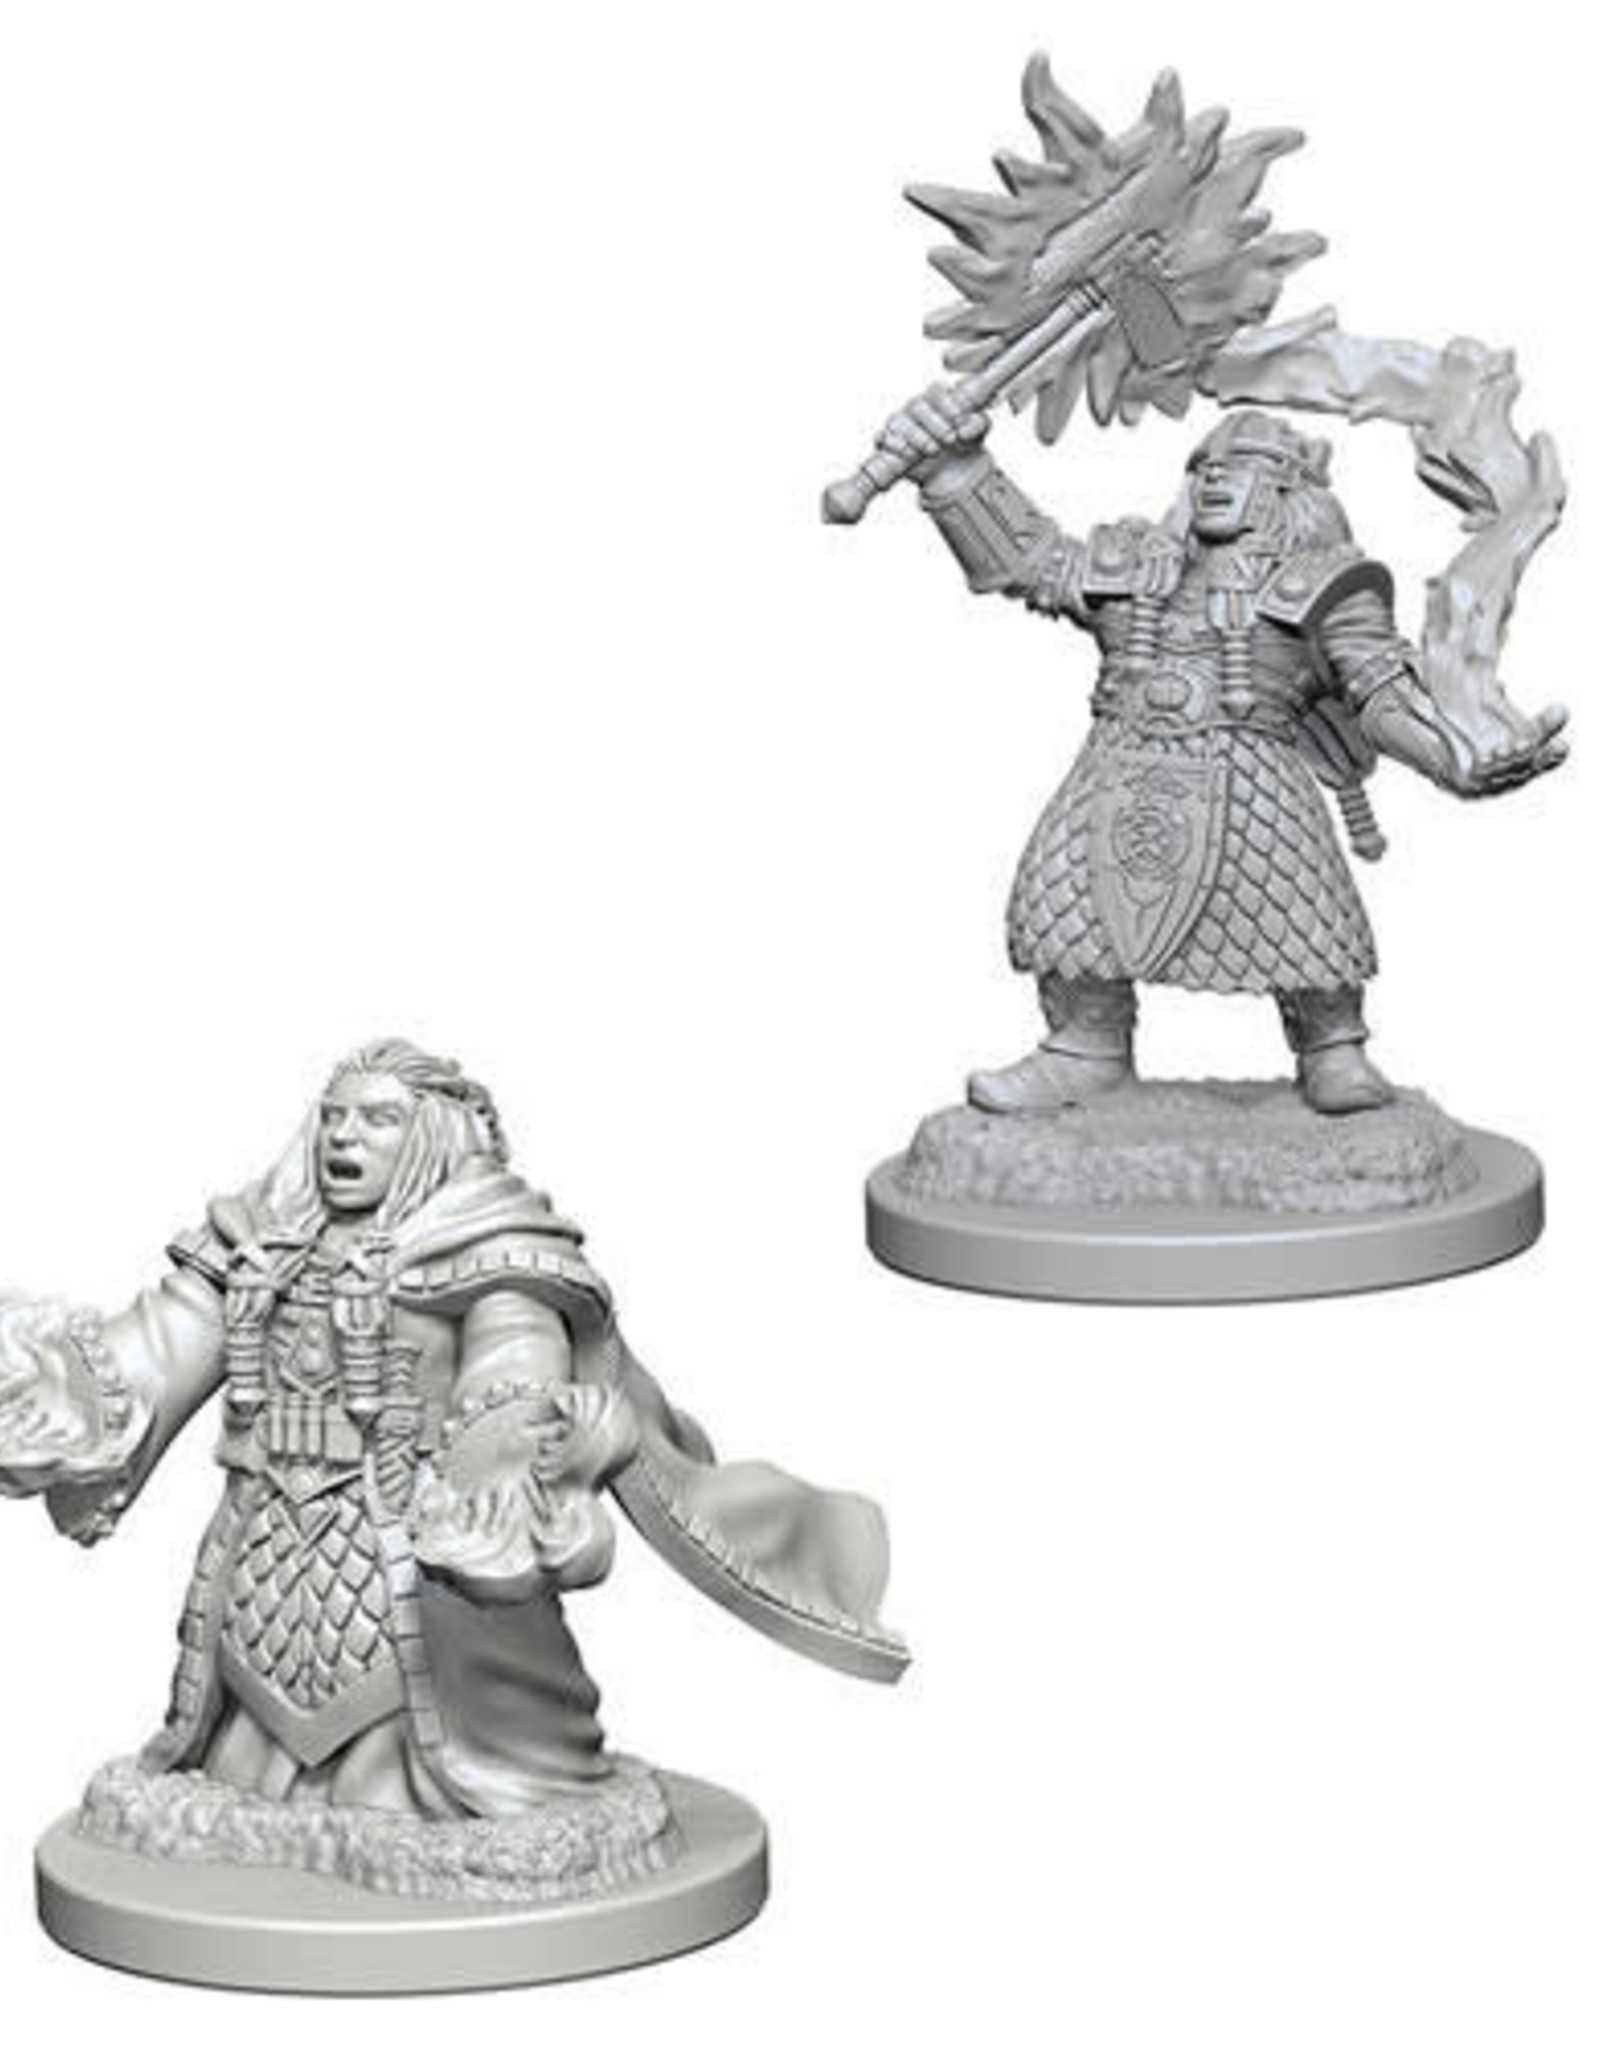 WizKids D&D Nolzur Dwarf Cleric (She/Her/They/Them)